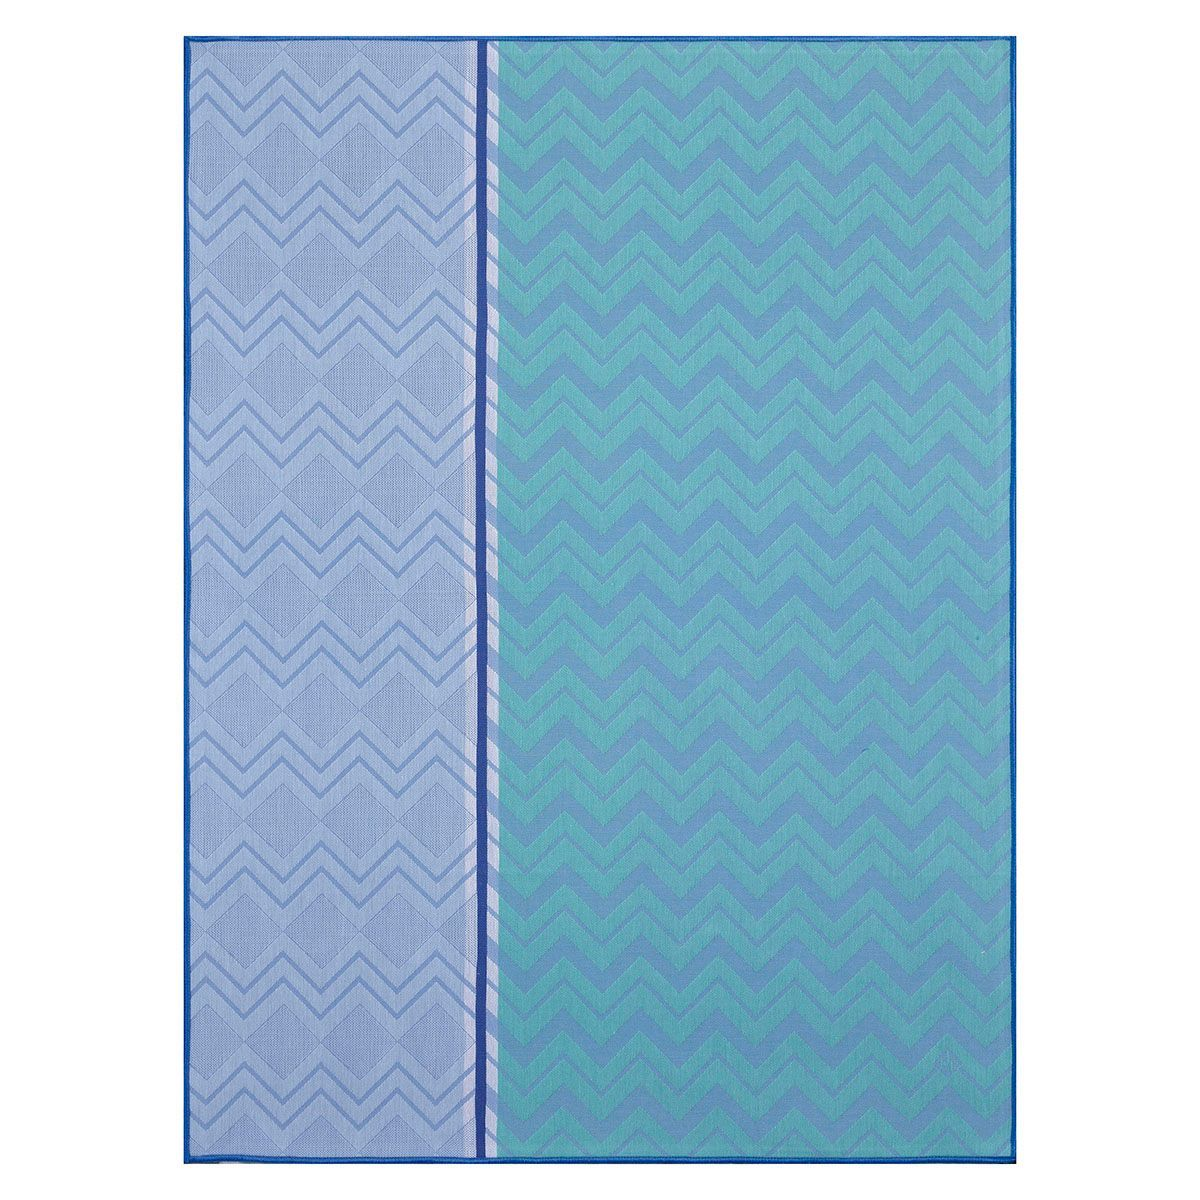 Color Rock Denim Tea Towels by Le Jacquard Français | Fig Linens